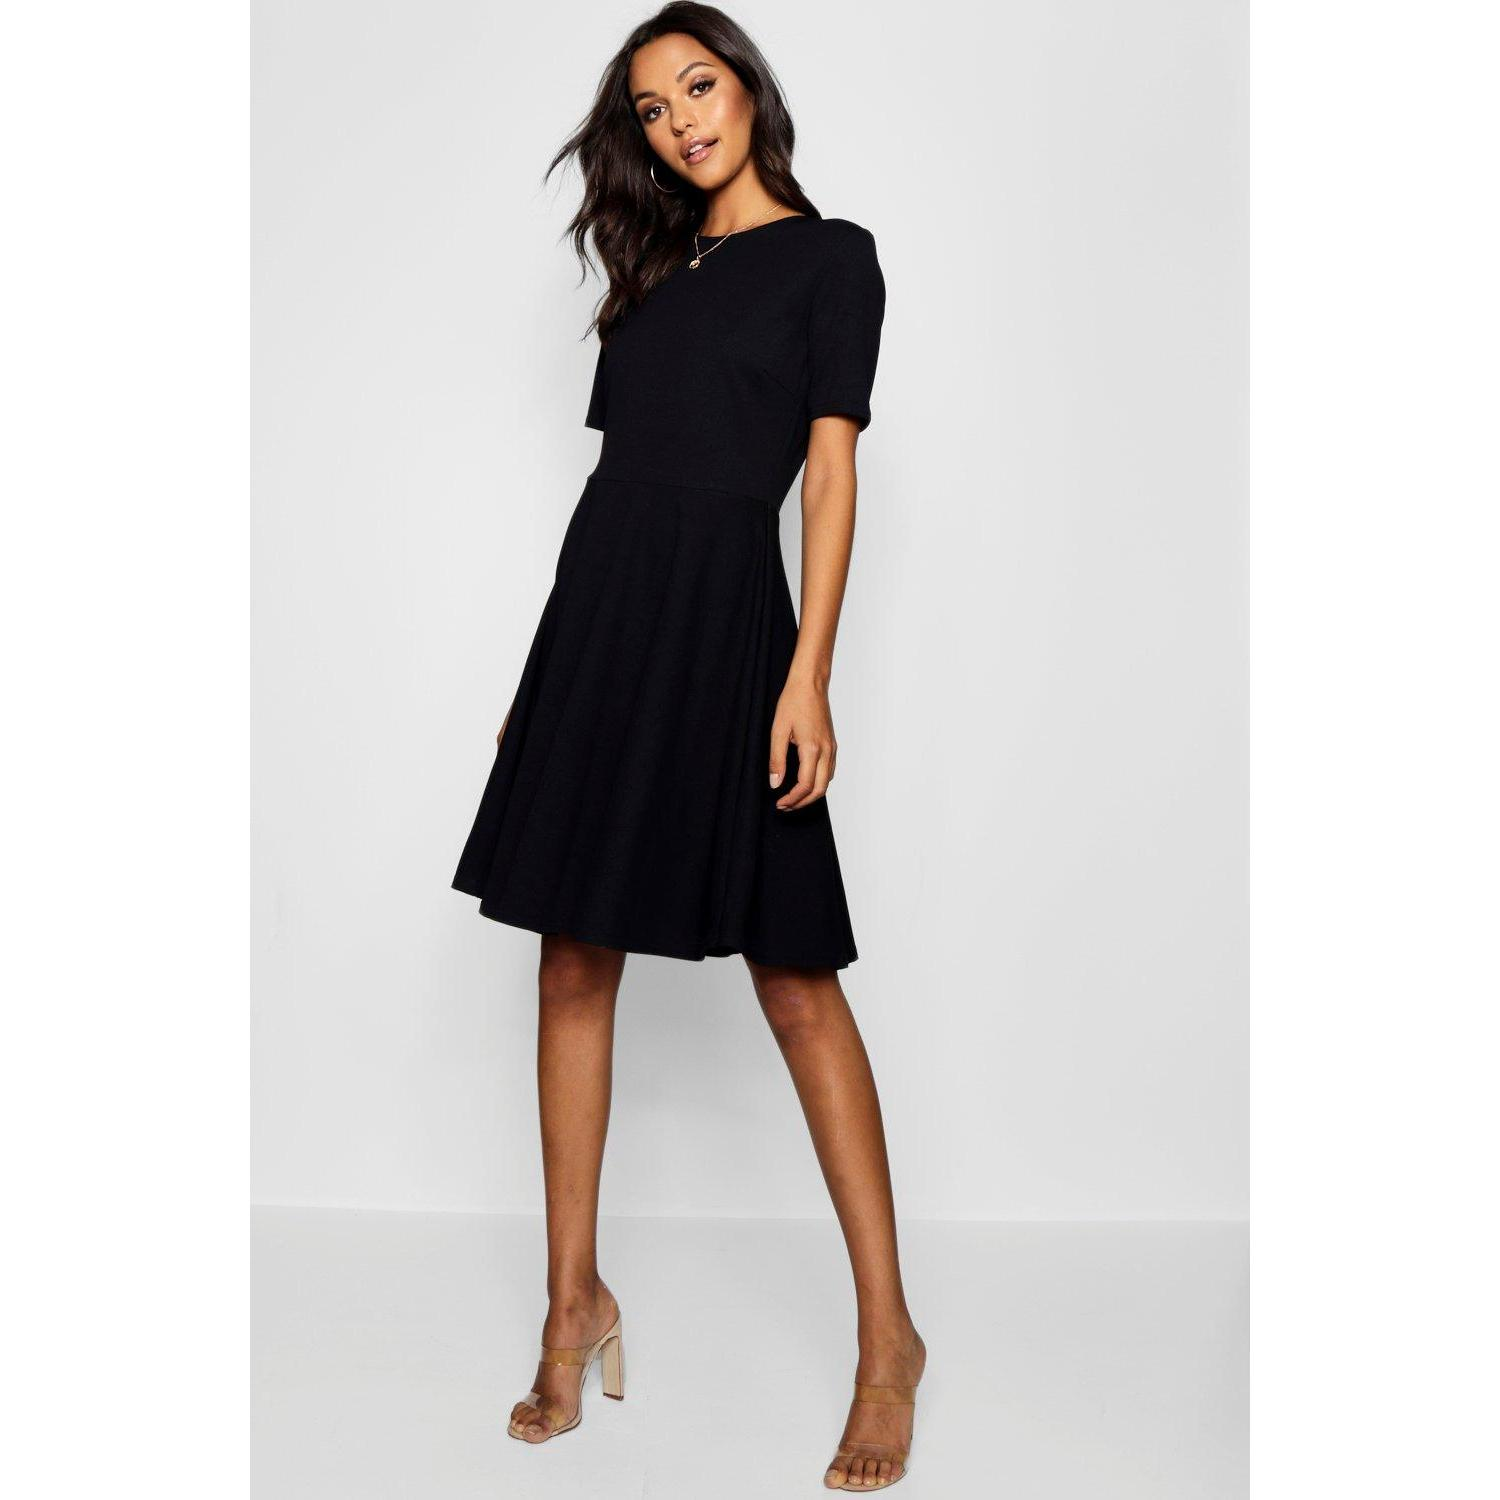 Robe Patineuse A Manches Courtes Tall Noir Selection Grandshopping Fr